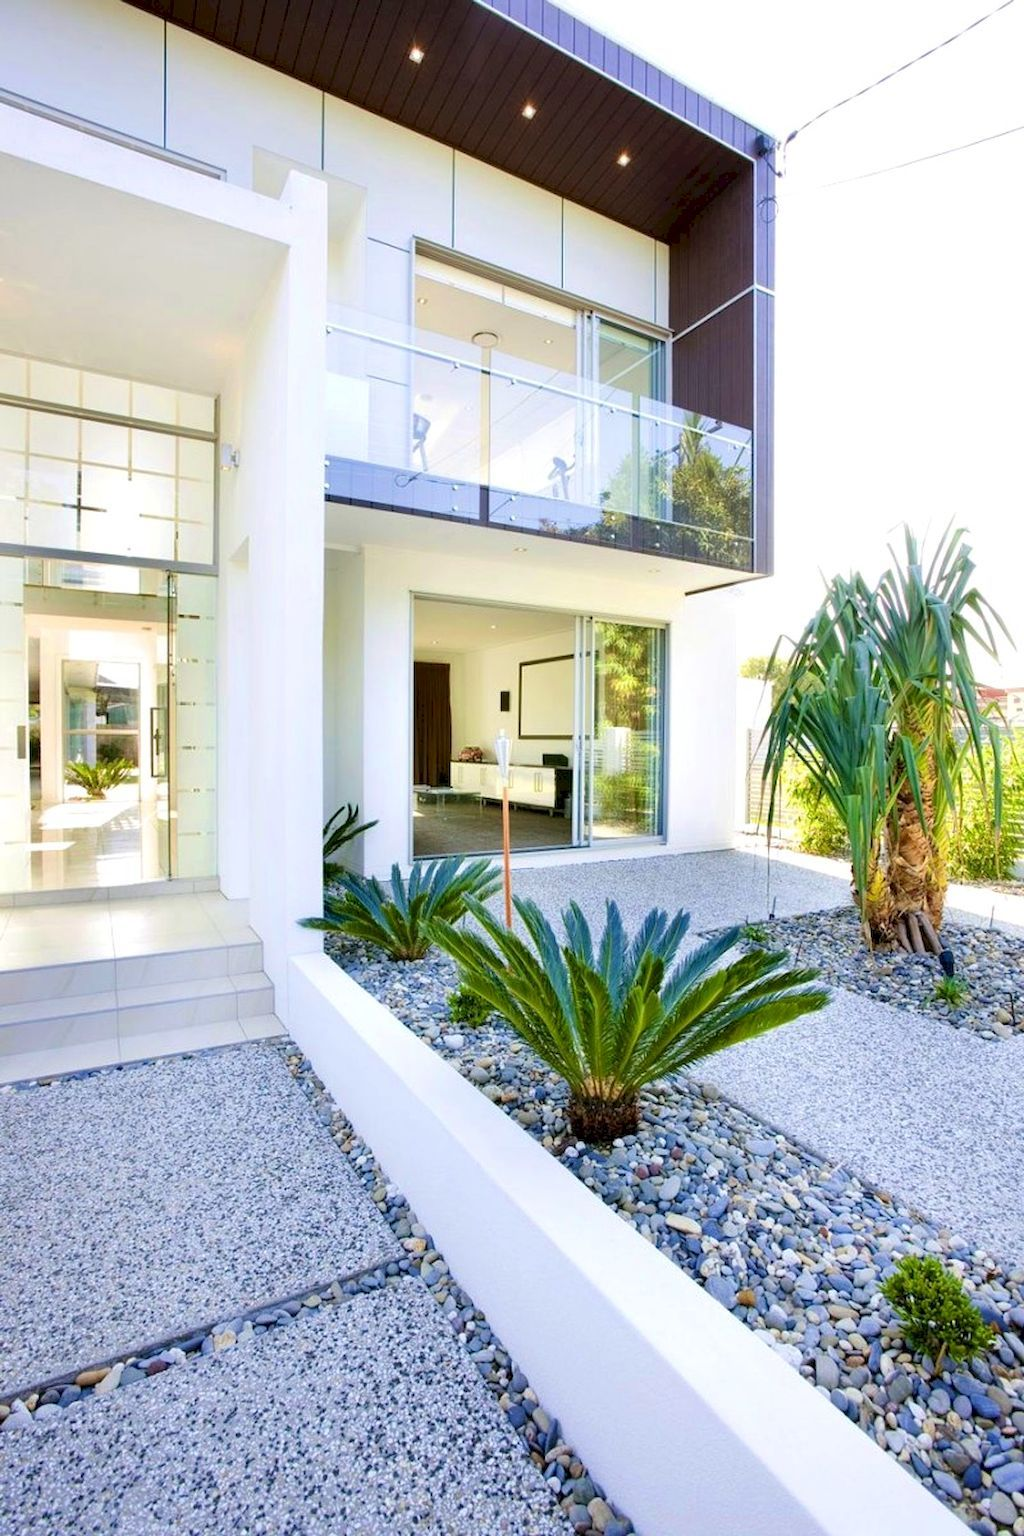 50 simple modern front yard landscaping ideas mid on inspiring trends front yard landscaping ideas minimal budget id=76704